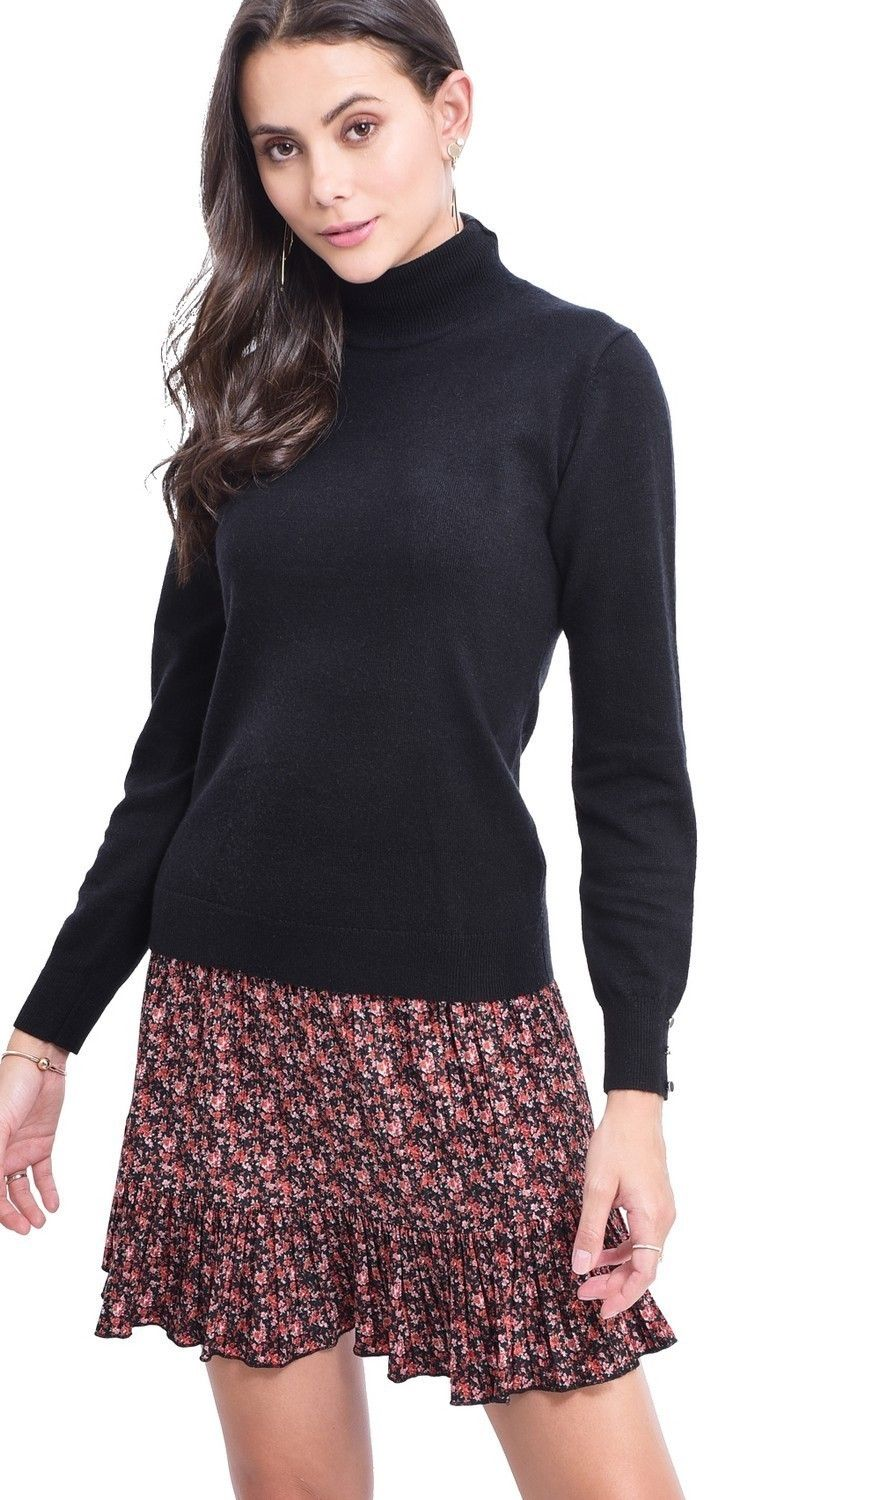 C&JO Turtleneck Sweater with Buttoned Sleeves in Black